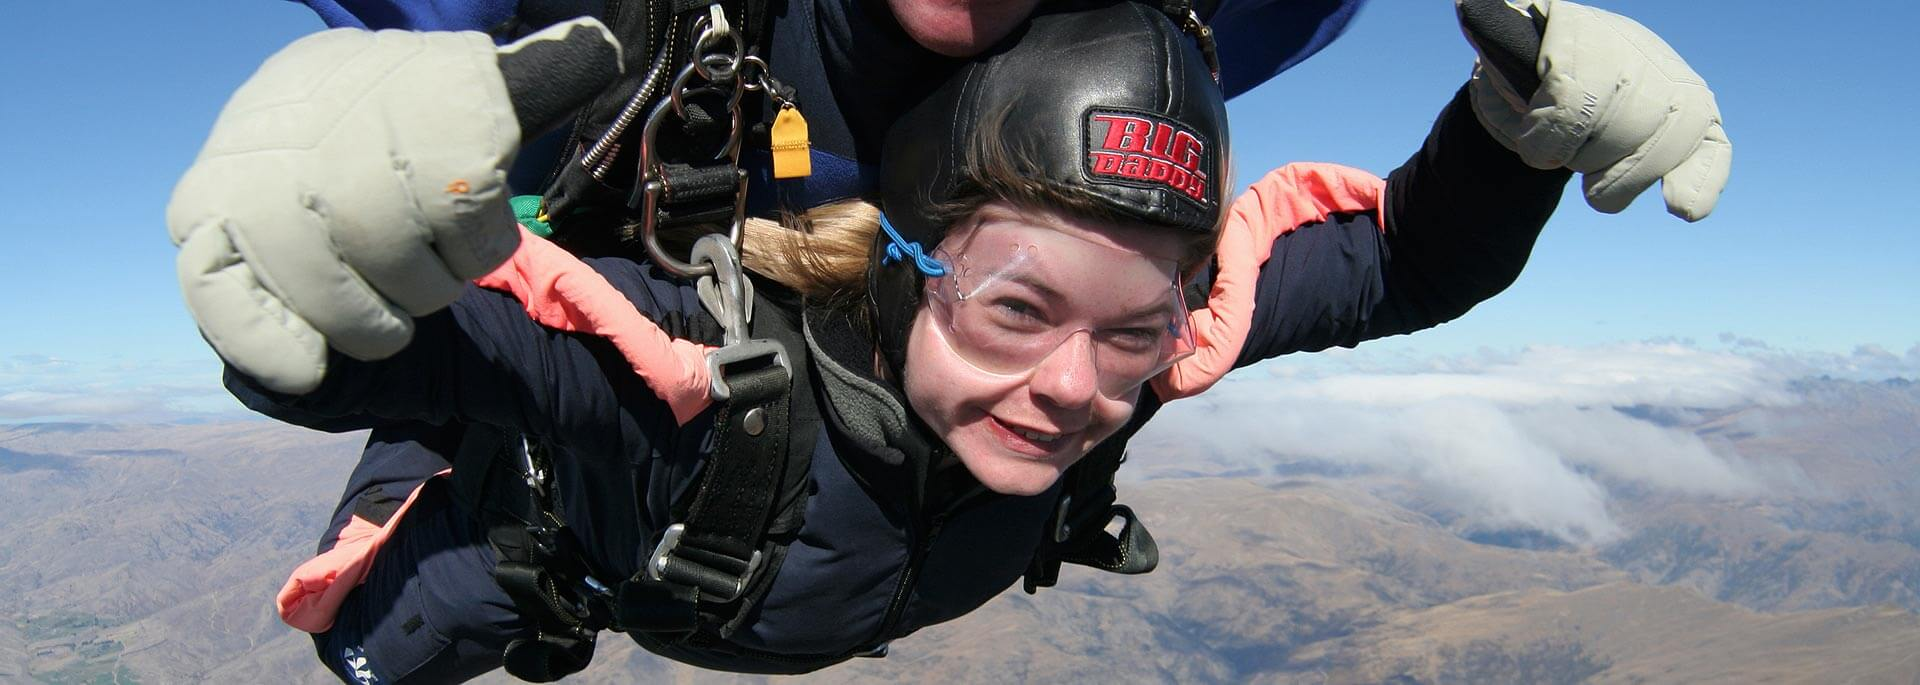 Fotos: Sky Dive in Neuseeland